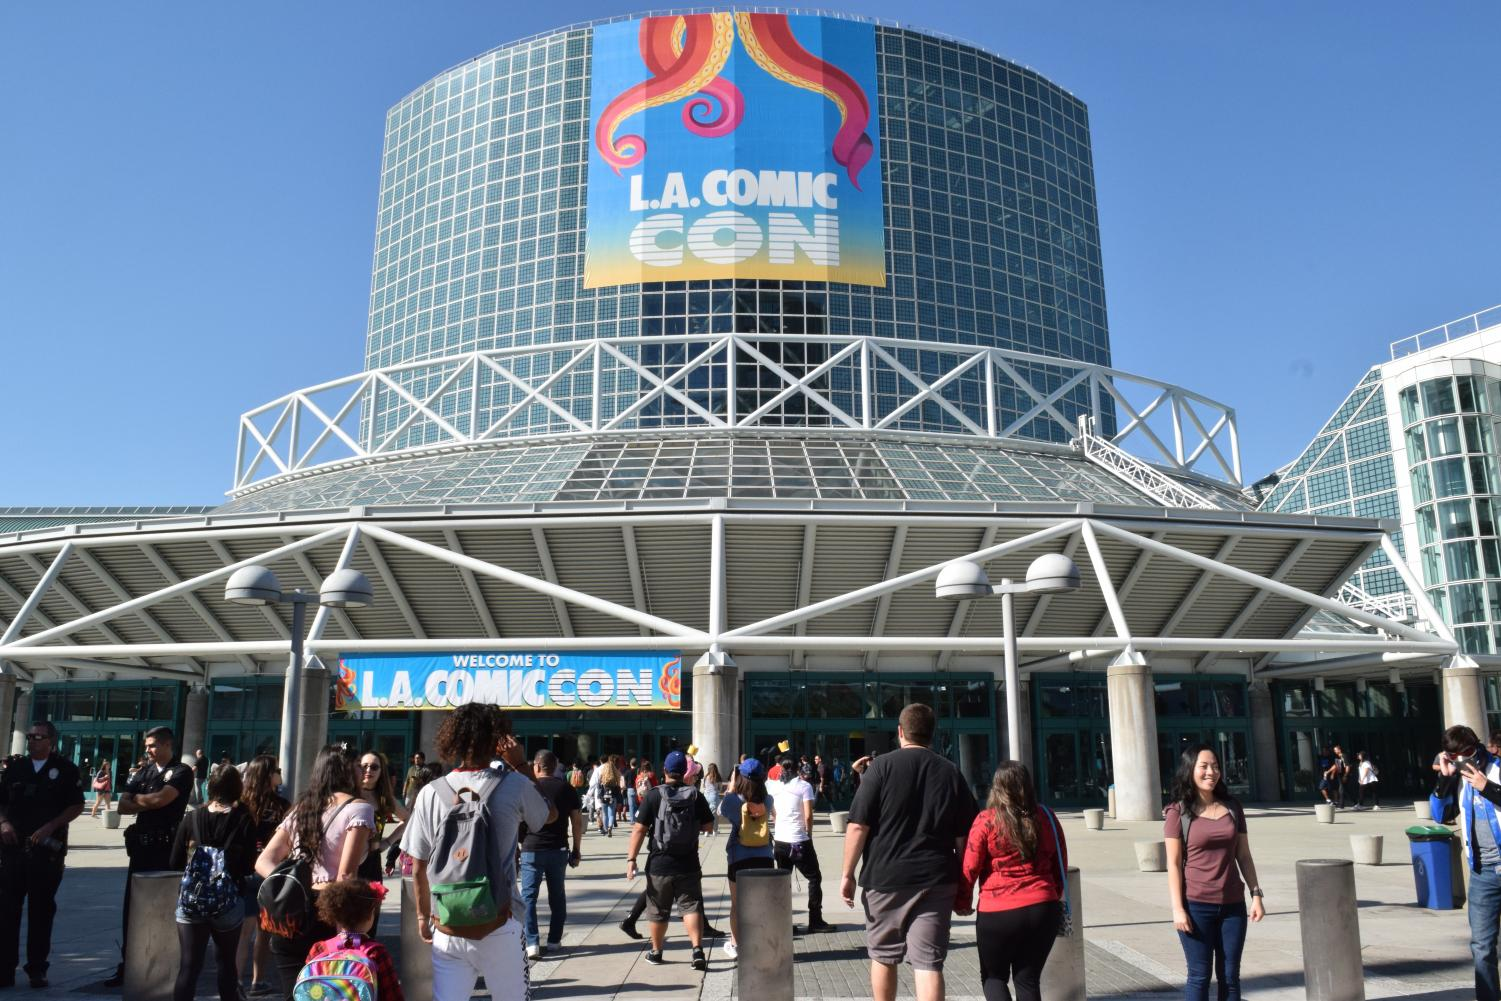 Los Angeles Comic Con hosted at the LA Convention Center has re branded its name. From Comikaze Expo and then Stan Lee's Comikaze and now calling themselves LA Comic Con.